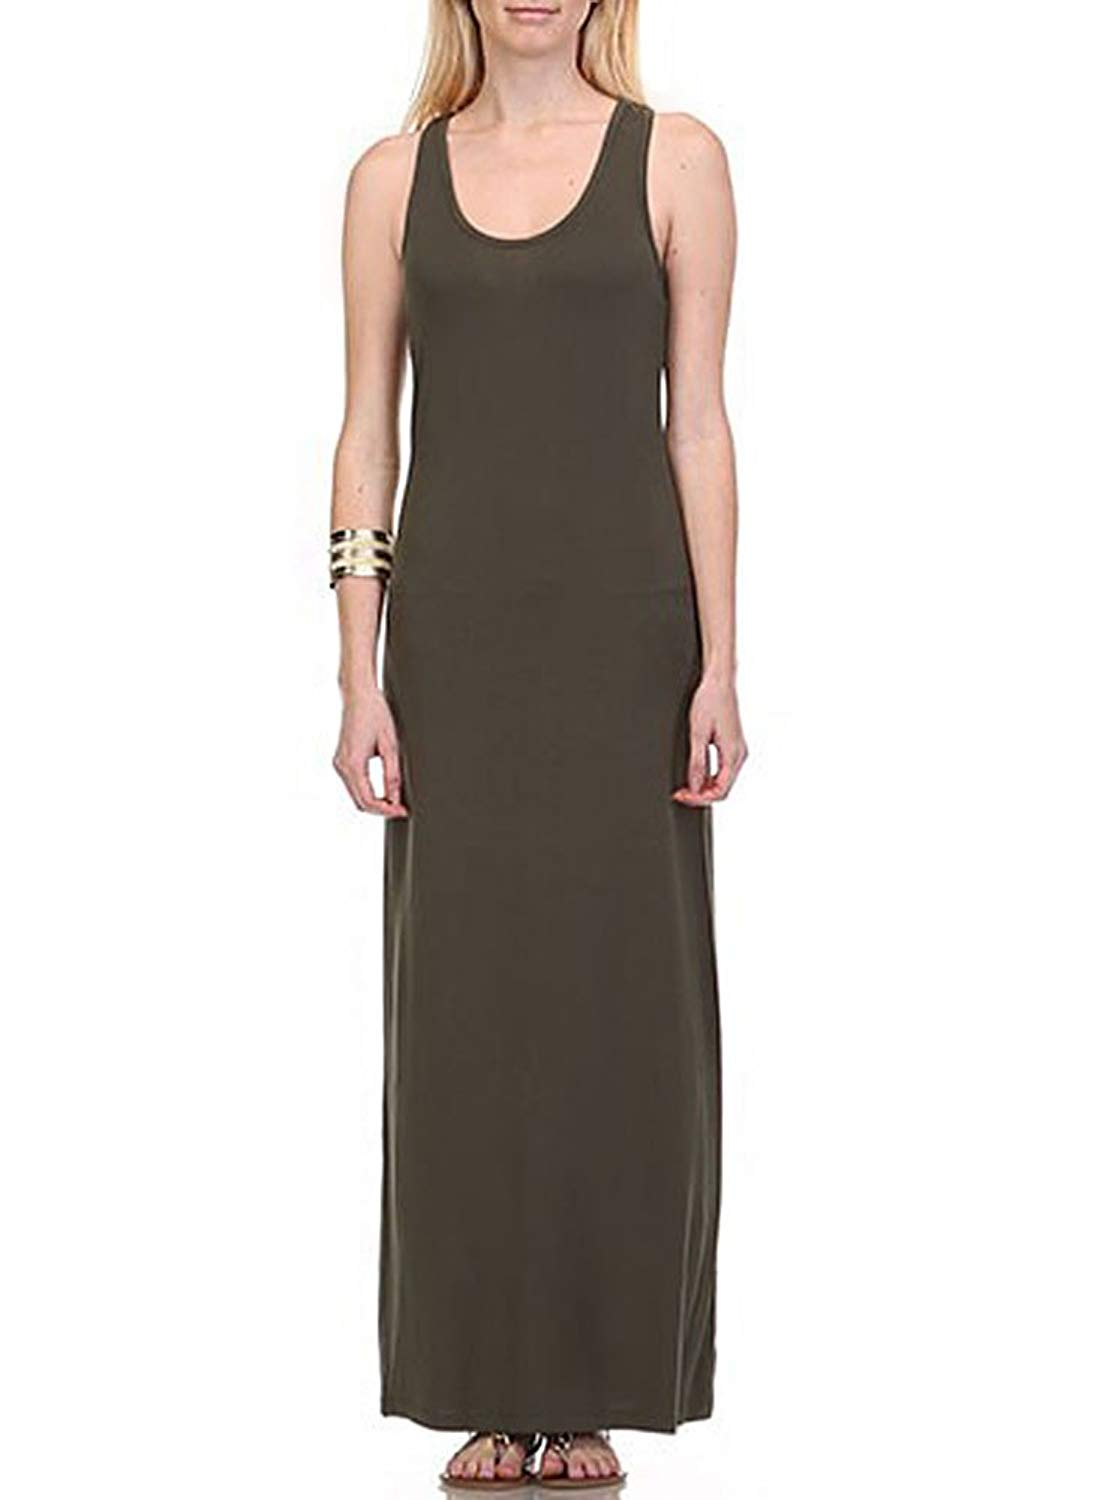 5b800fe841830 Get Quotations · Heart&Hips and Active Basic Solid Color Racerback Scoop  Neck Sleeveless Tank Maxi Dress